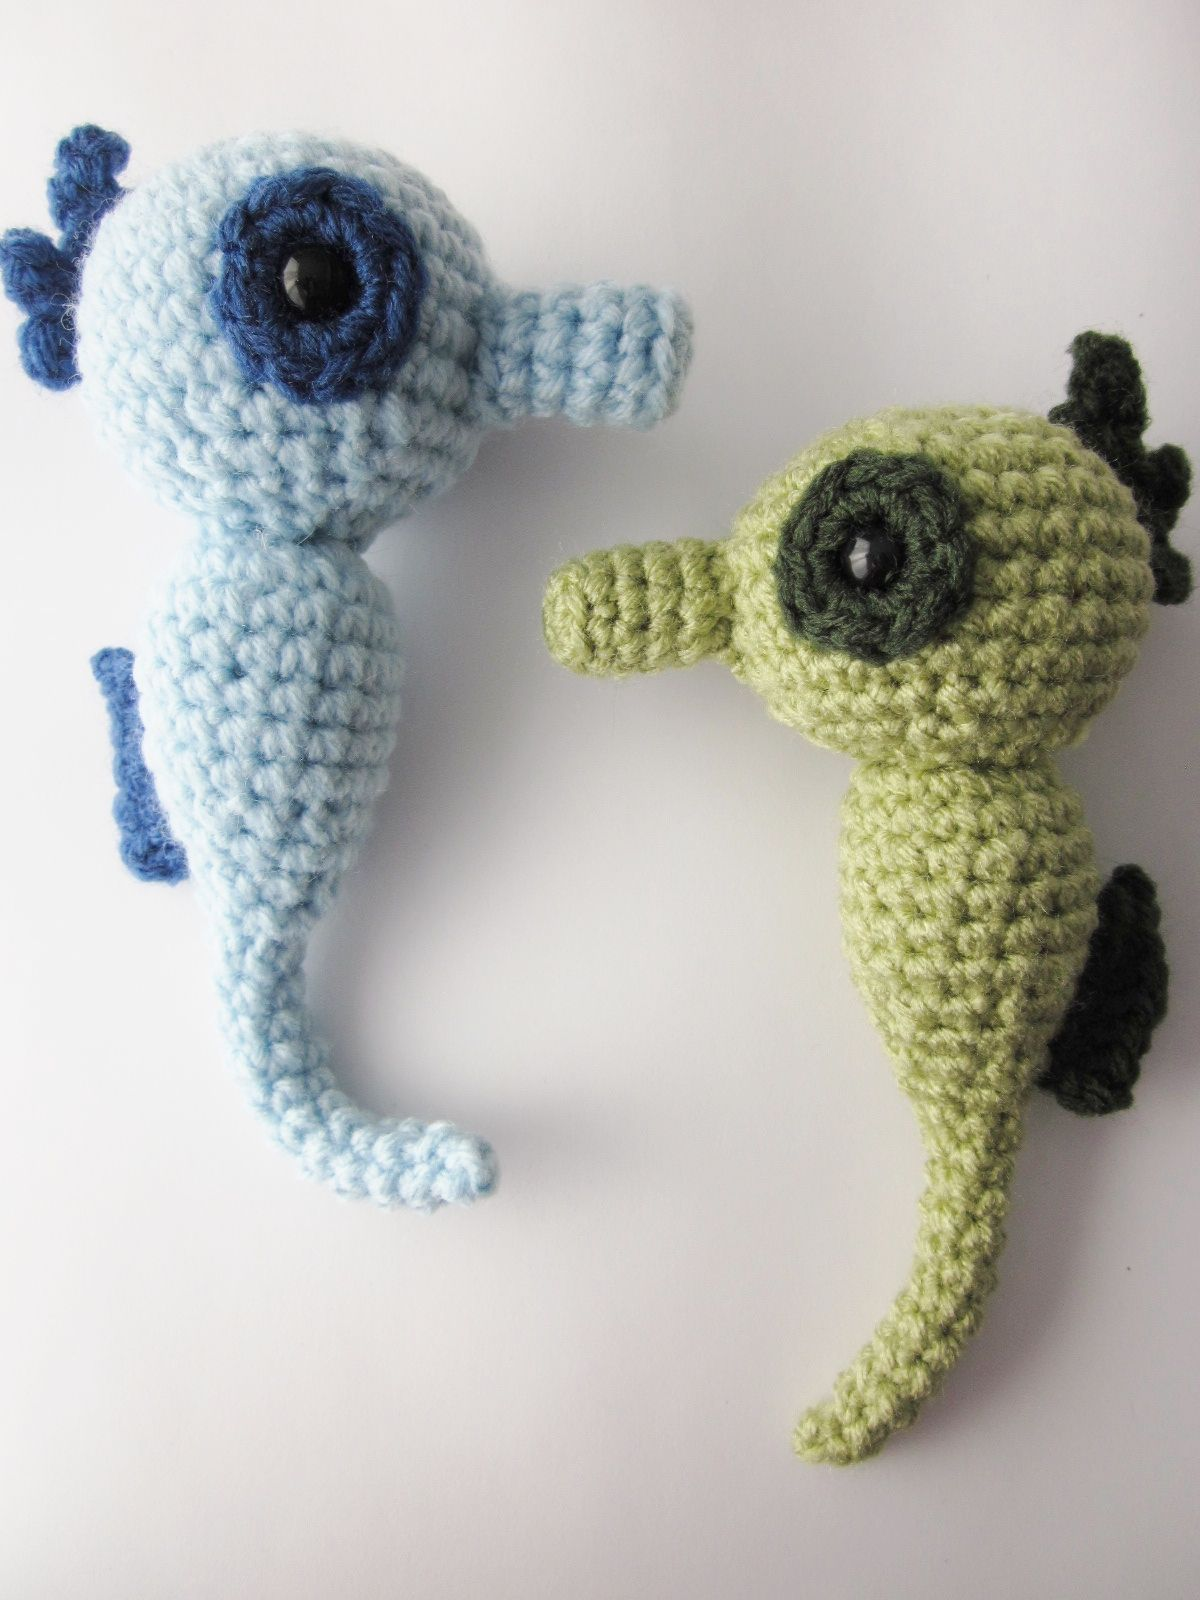 Amigurumi seahorse crochet pattern seahorses free crochet and free crochet pattern for these adorable seahorses bankloansurffo Image collections